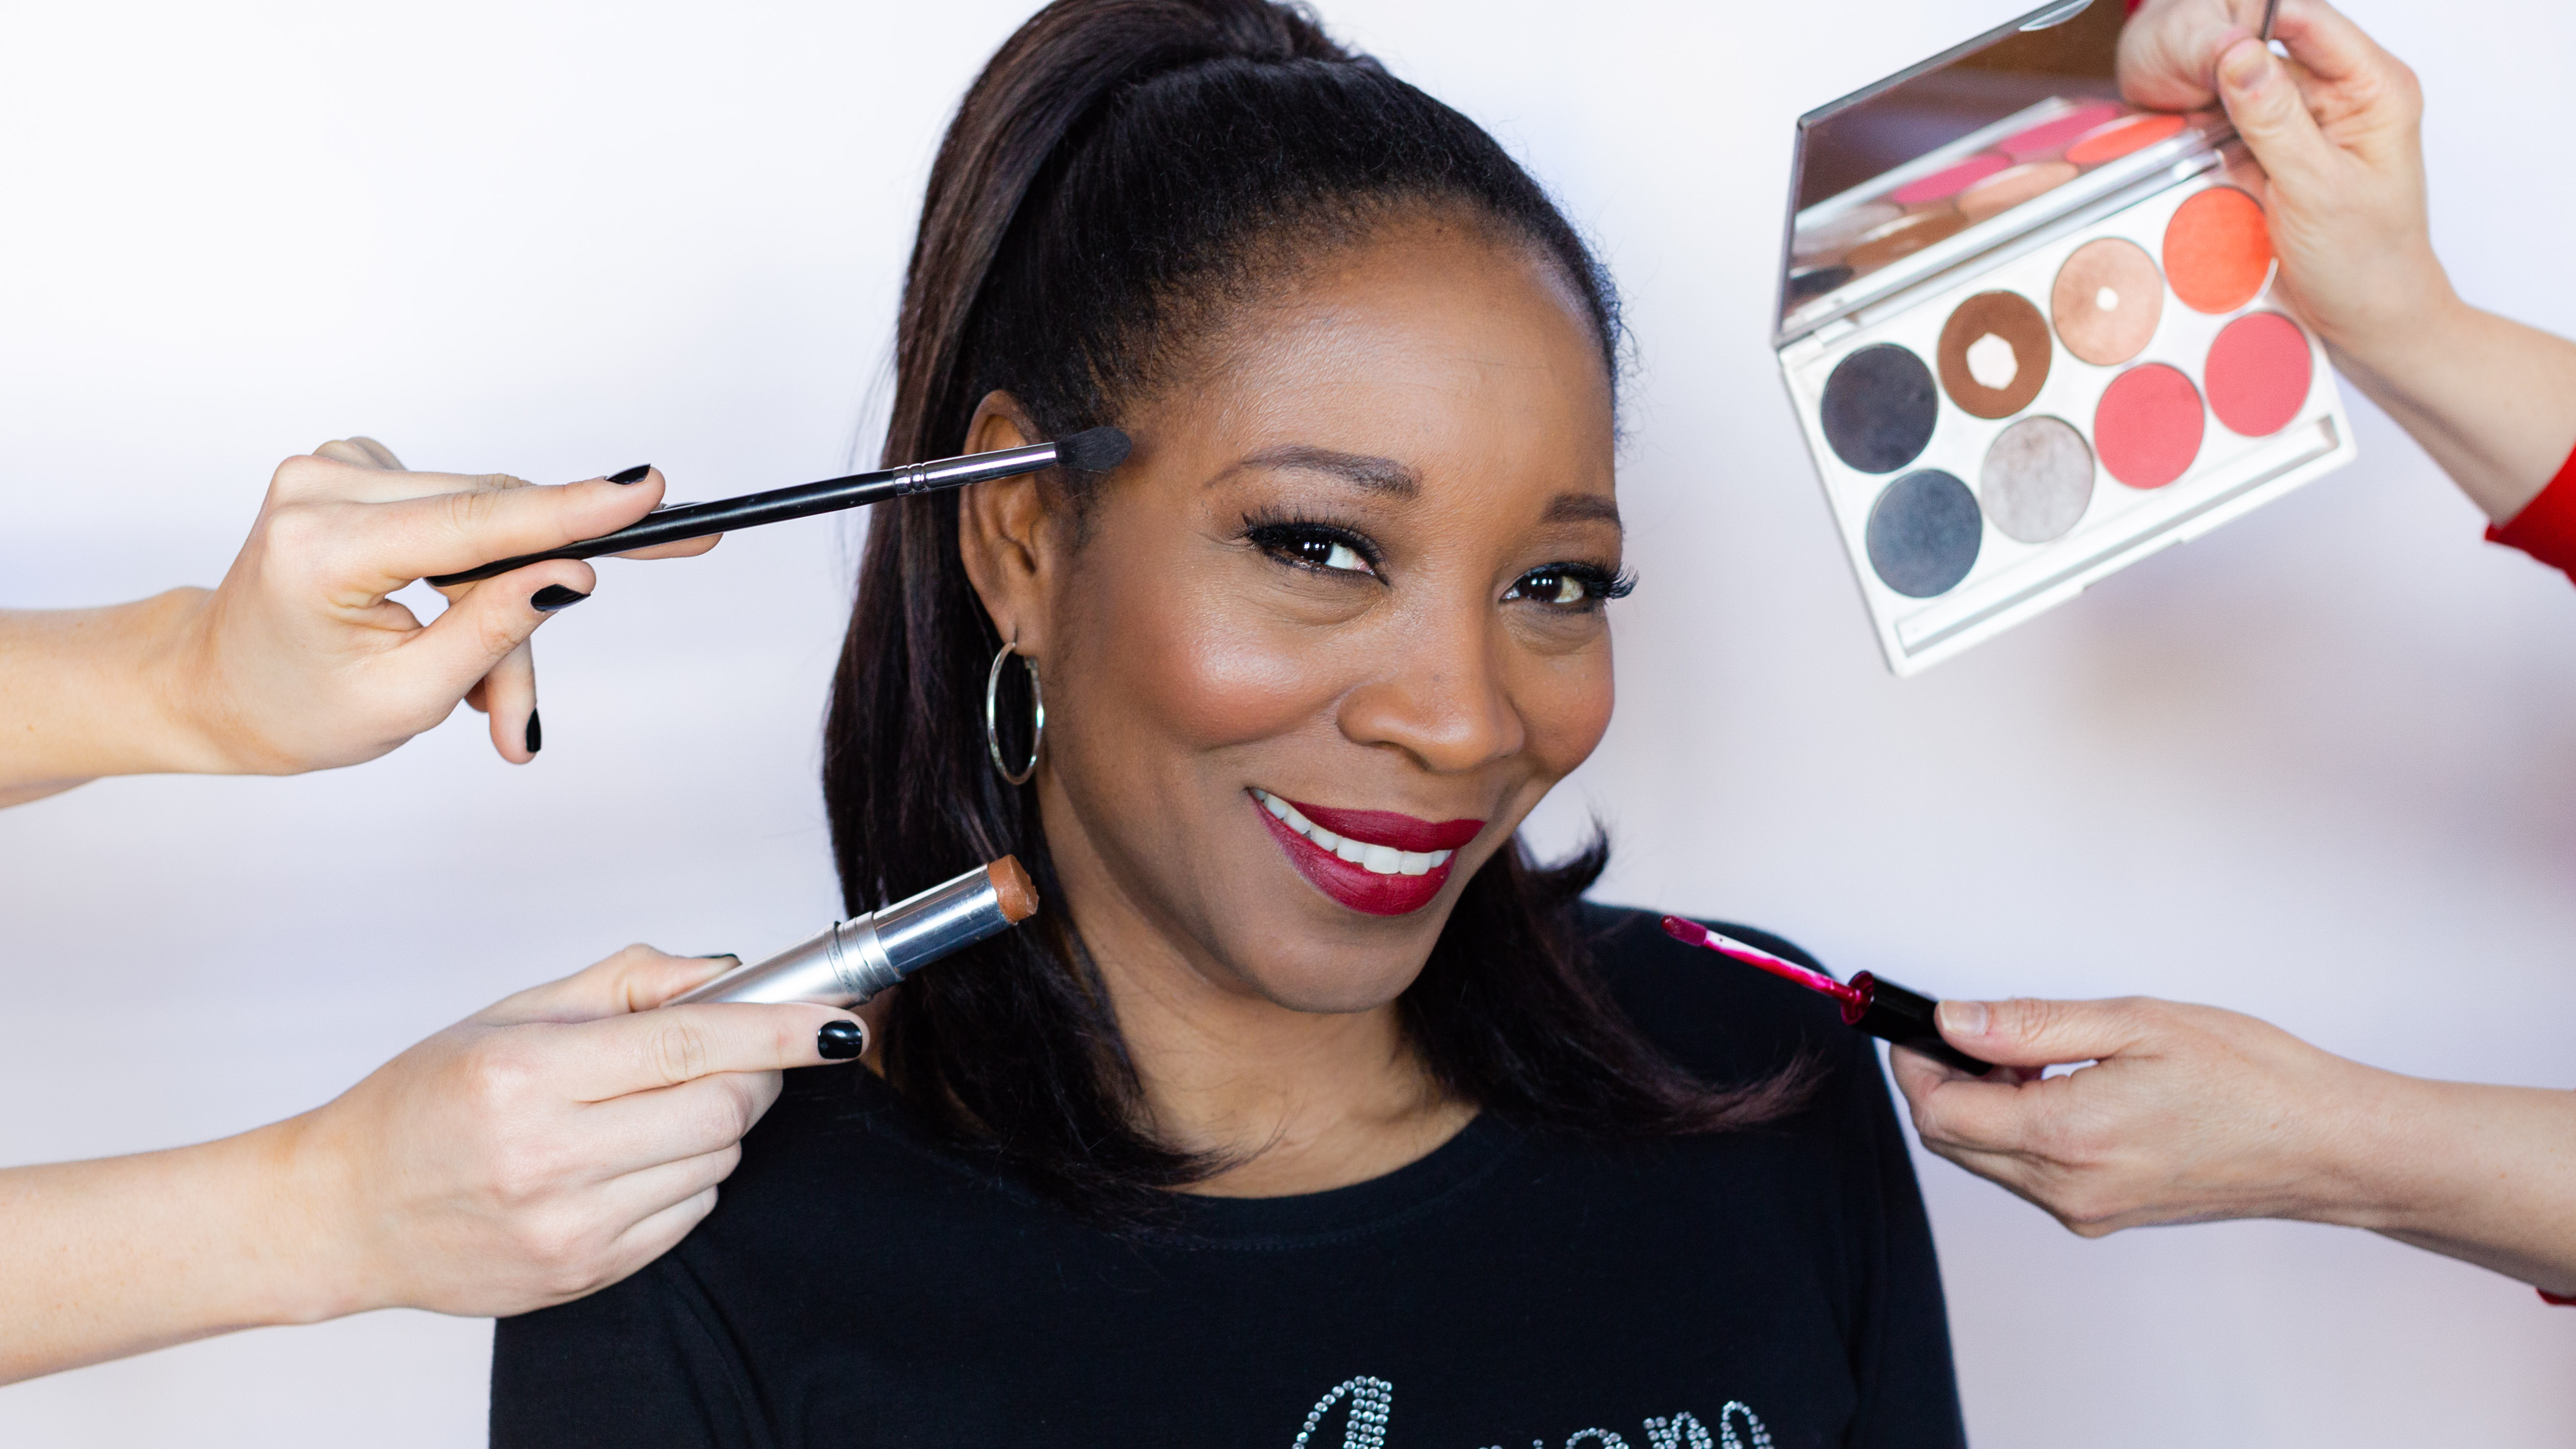 Alabama makeup artist turns childhood dream into a rewarding career